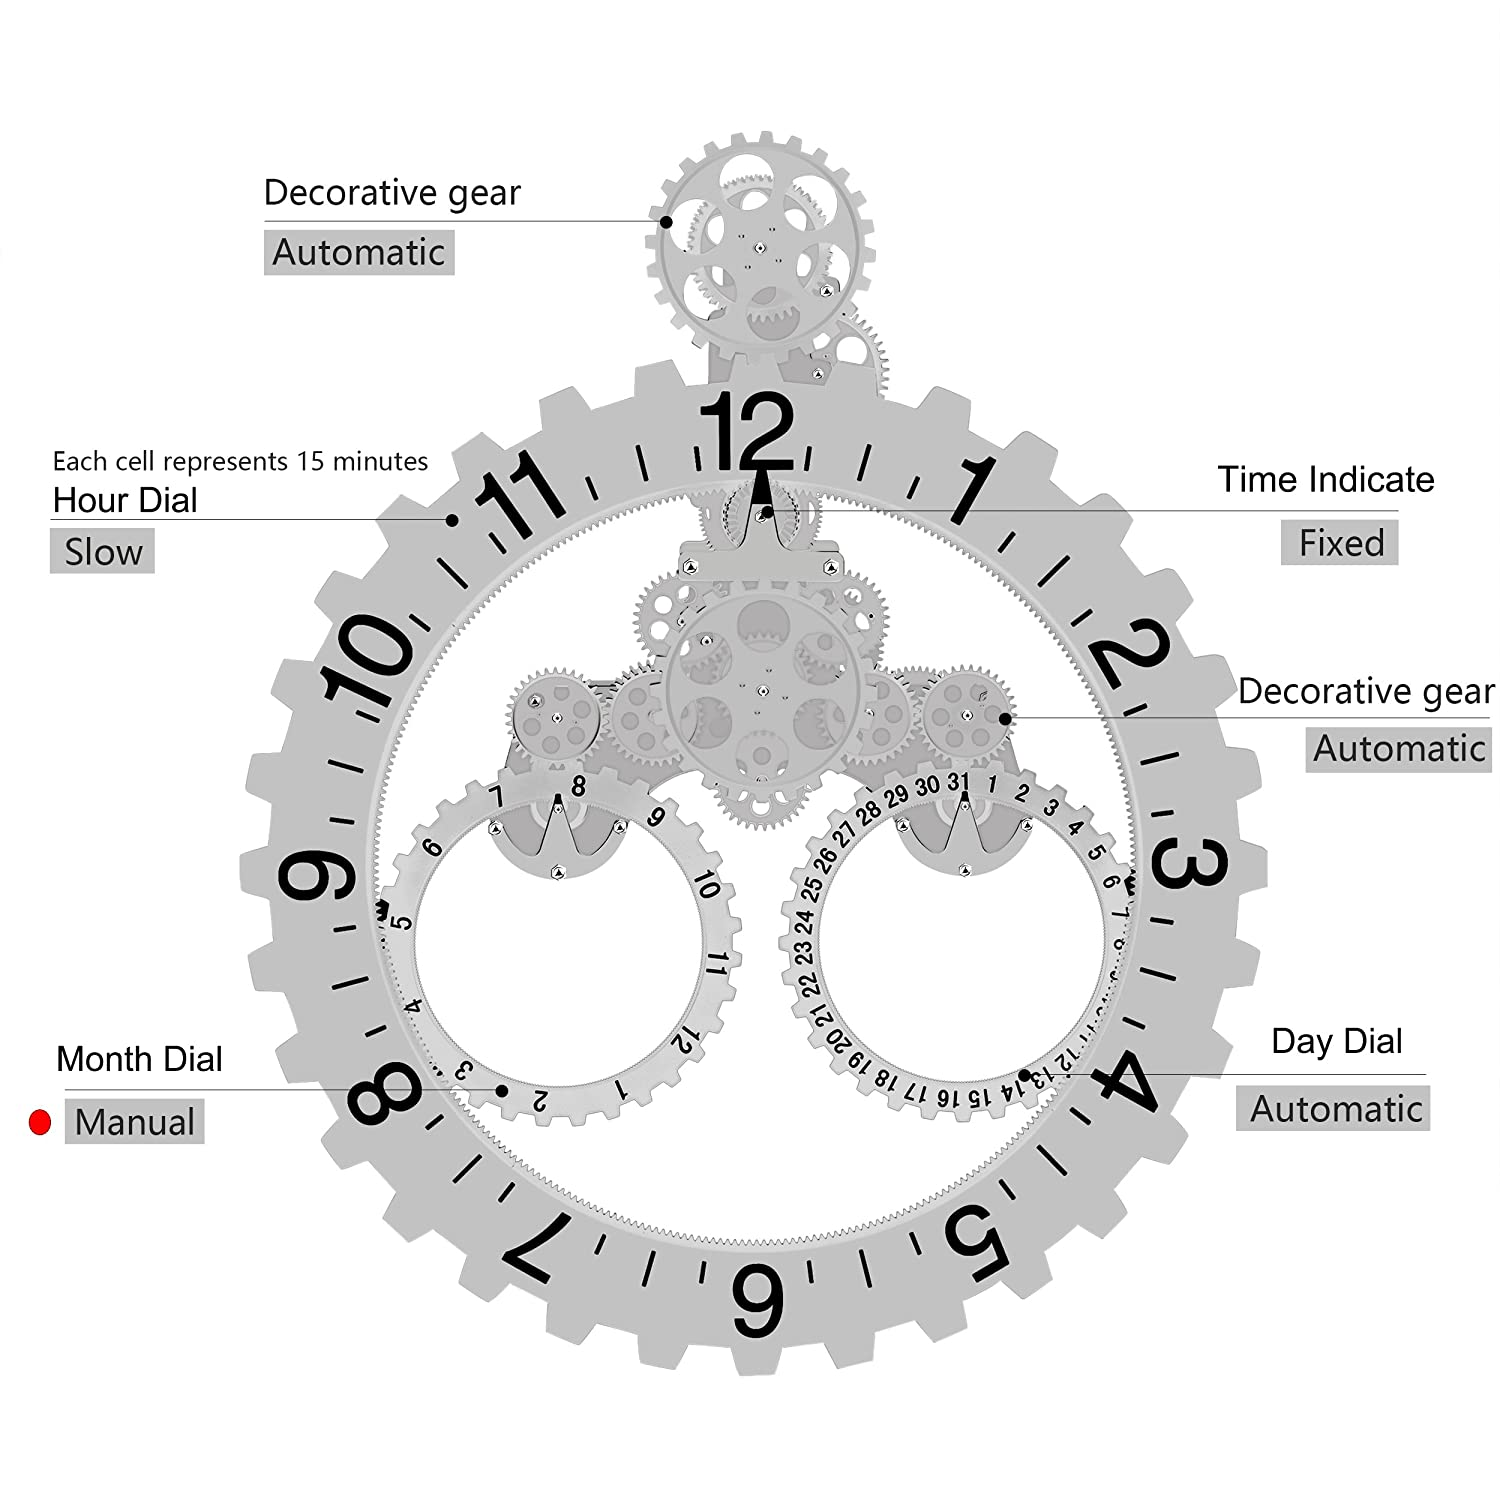 Premium Plastic and Metal Brain Artworks Black Gear Clocks Wall Decoration for Living Room Bedroom 12.2 x 8.7 SevenUp Large Decorative Wall Clock Silent Non Ticking,12.2 x 8.7